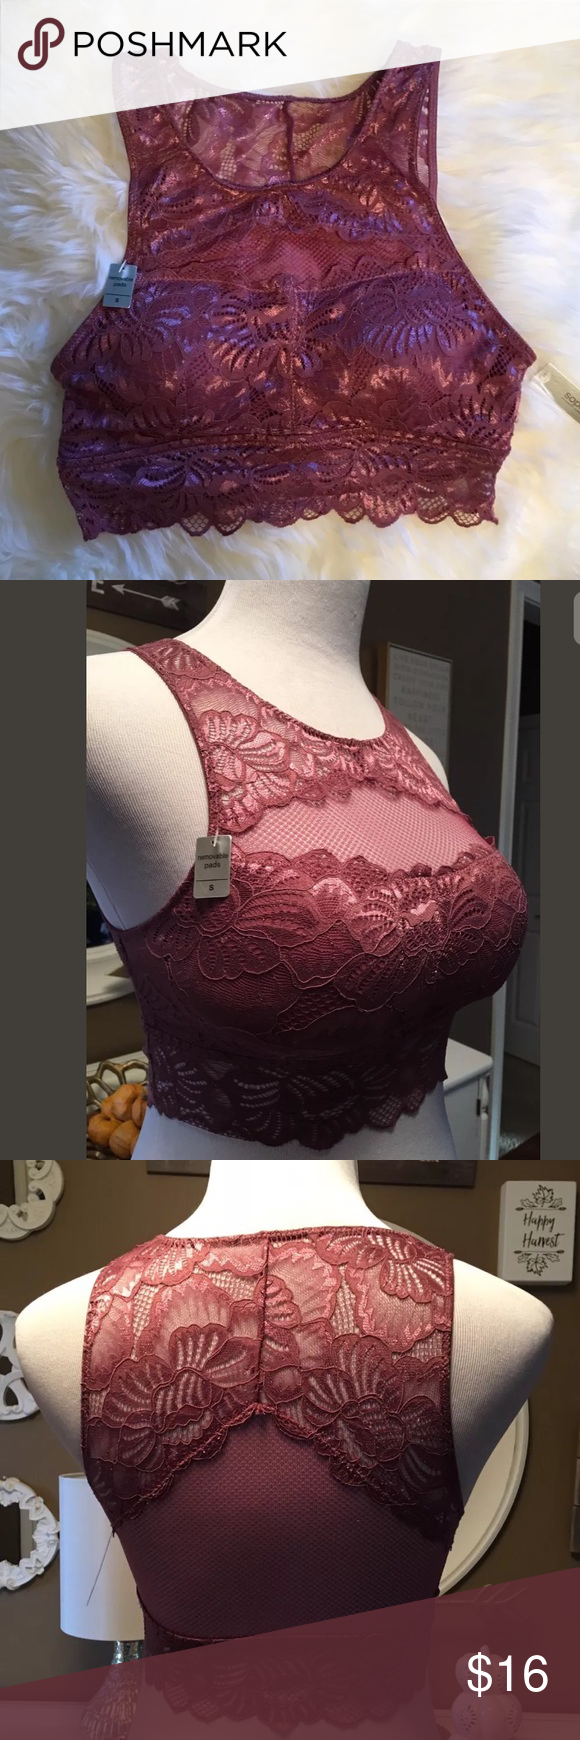 ef3212a341f08 Sophie B Lace Mesh High Neck Rose Bralette Sophie B Lace Mesh High Neck  Rose Pink Bralette Removable Pads Sz S NWT  42 Sophie B. Intimates   Sleepwear  Bras